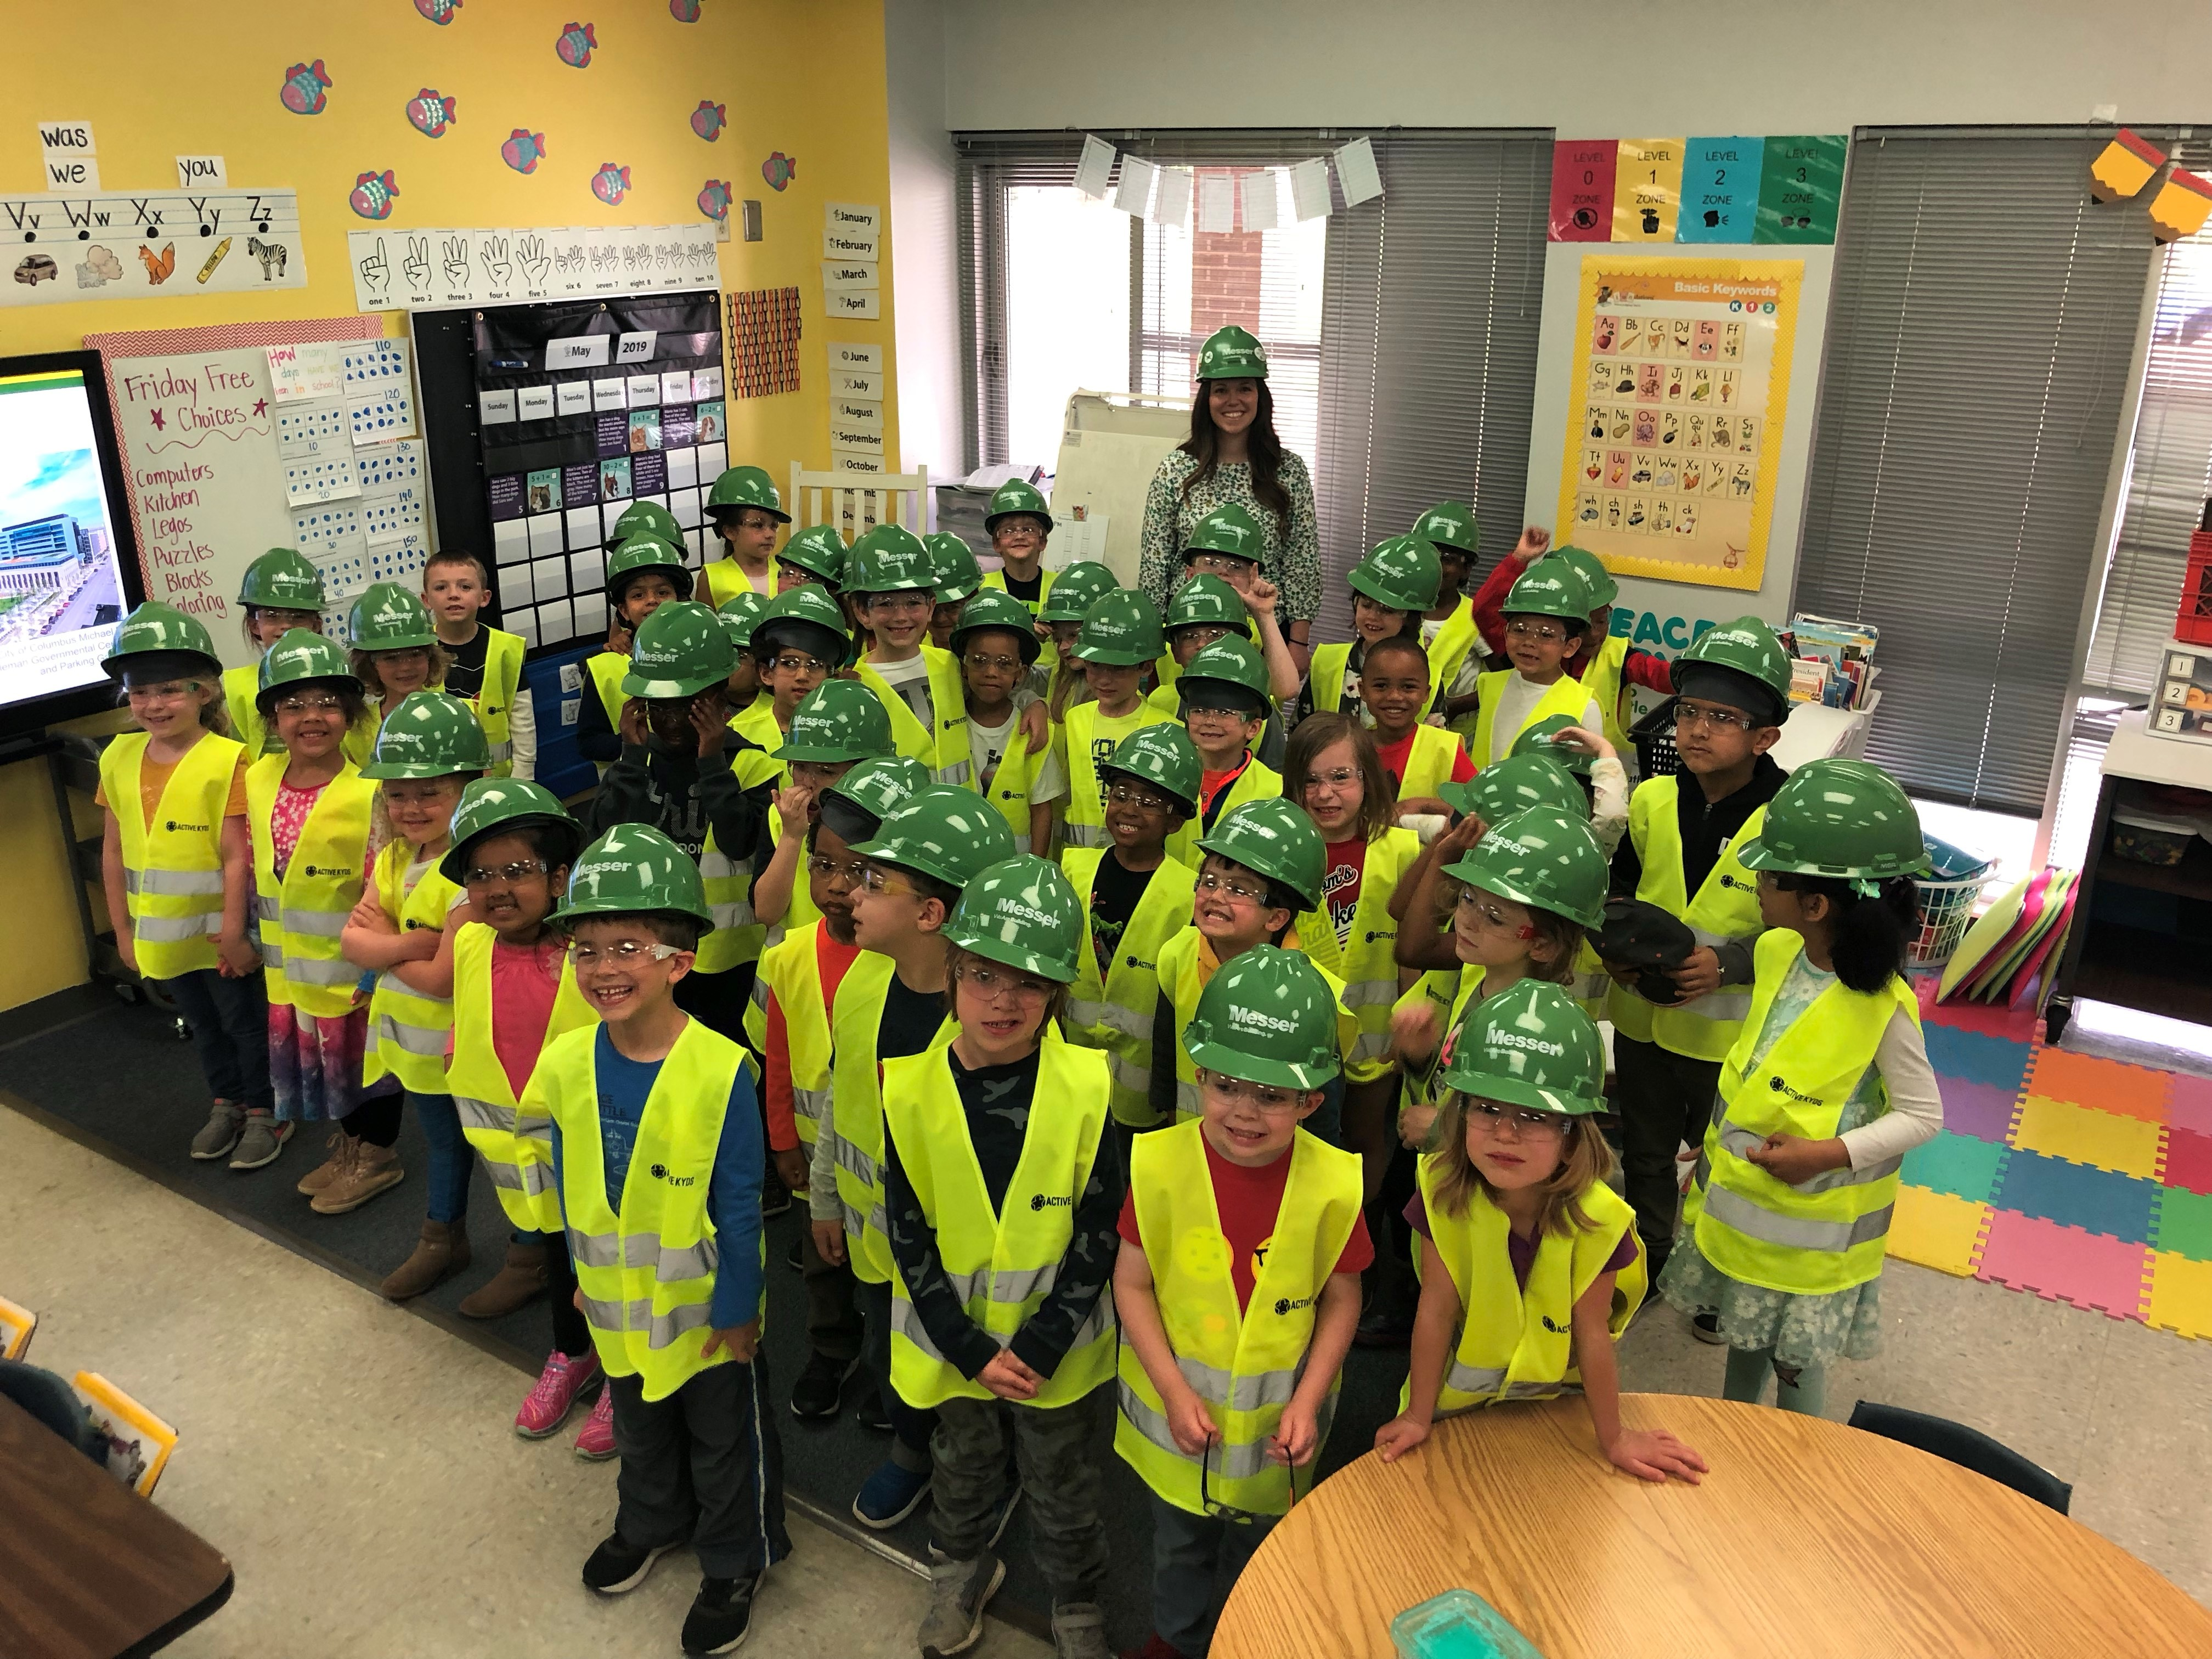 Kindergarten students with hard hats, goggles and vests